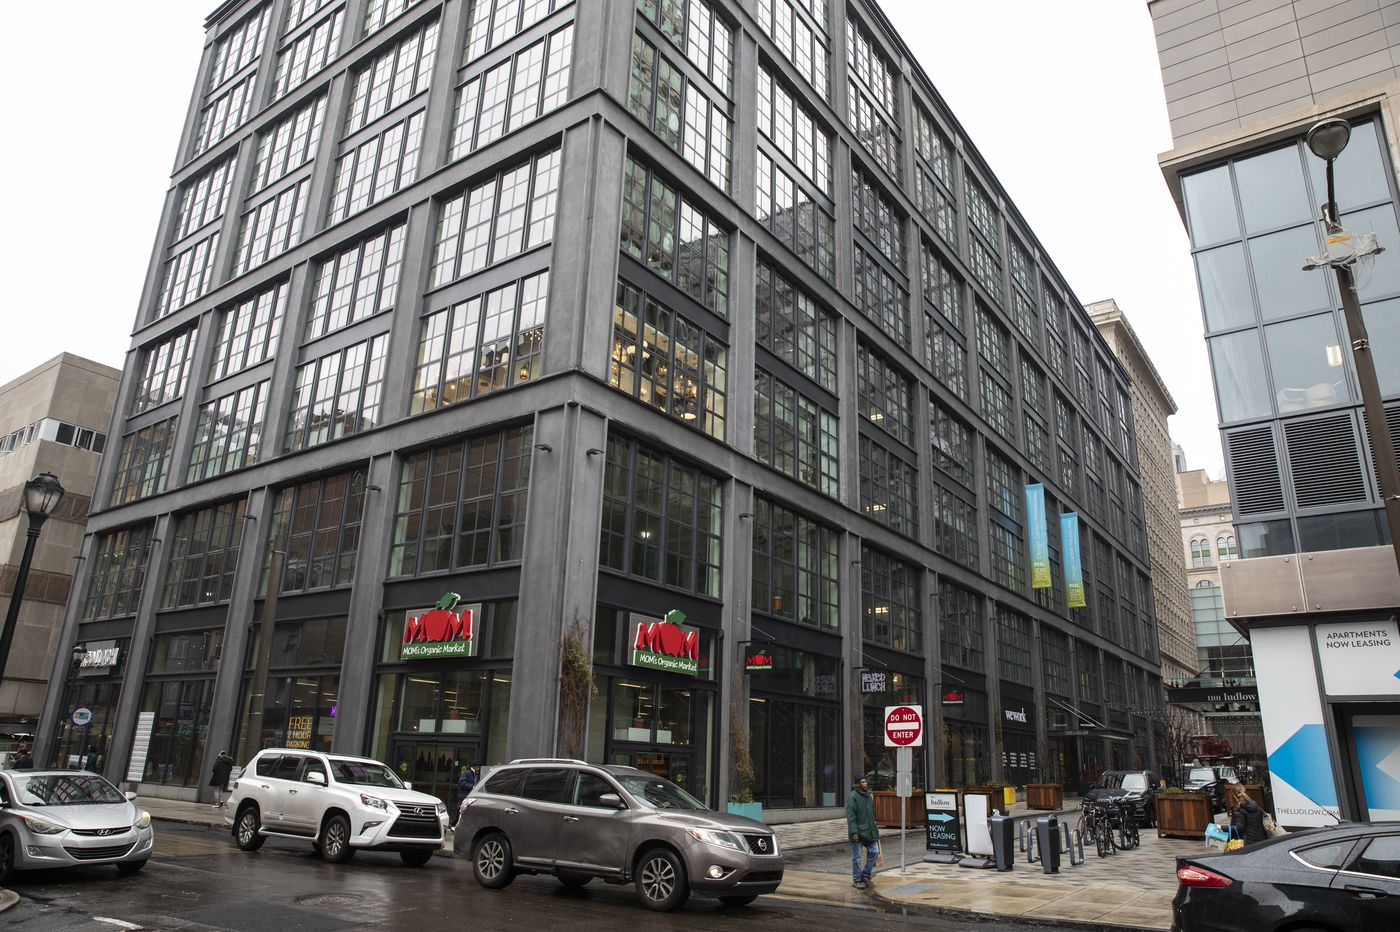 Merck To Establish a Center City Outpost at WeWork Coworking Location